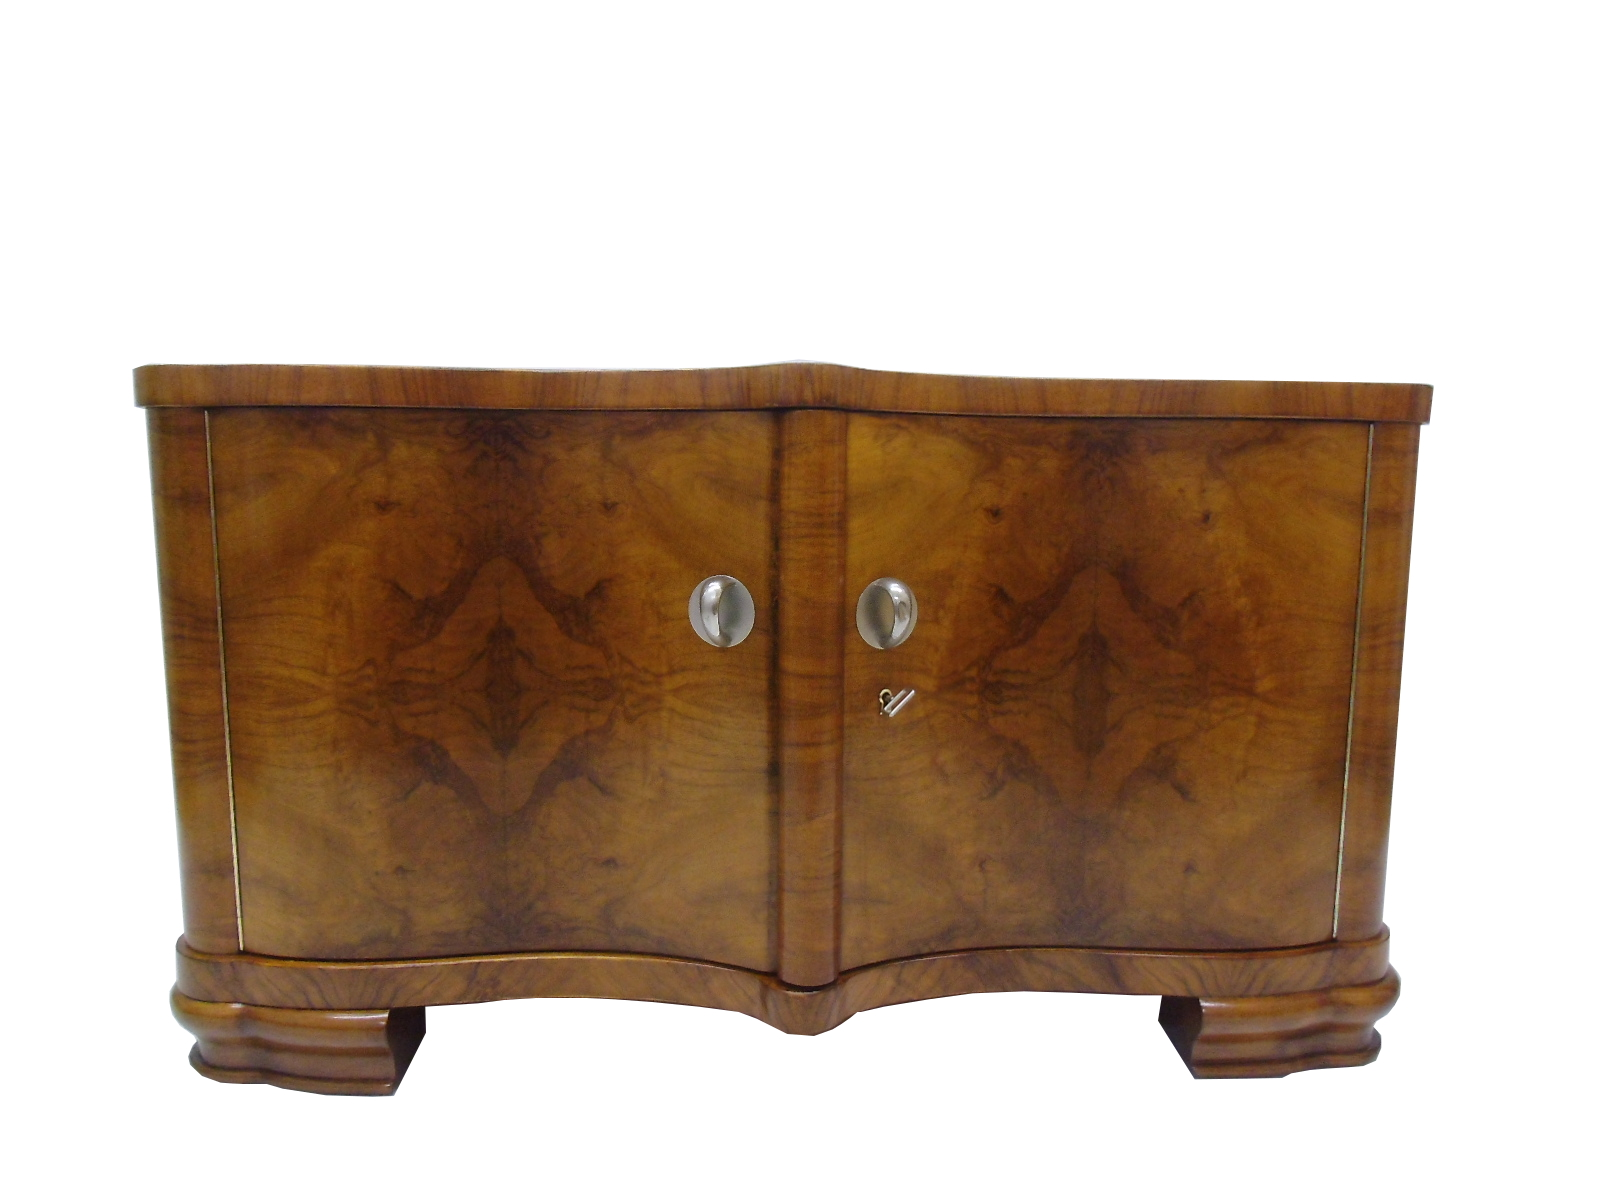 Stupendous Bookmatched Burl Art Deco Commode Or Small Sideboard Creativecarmelina Interior Chair Design Creativecarmelinacom